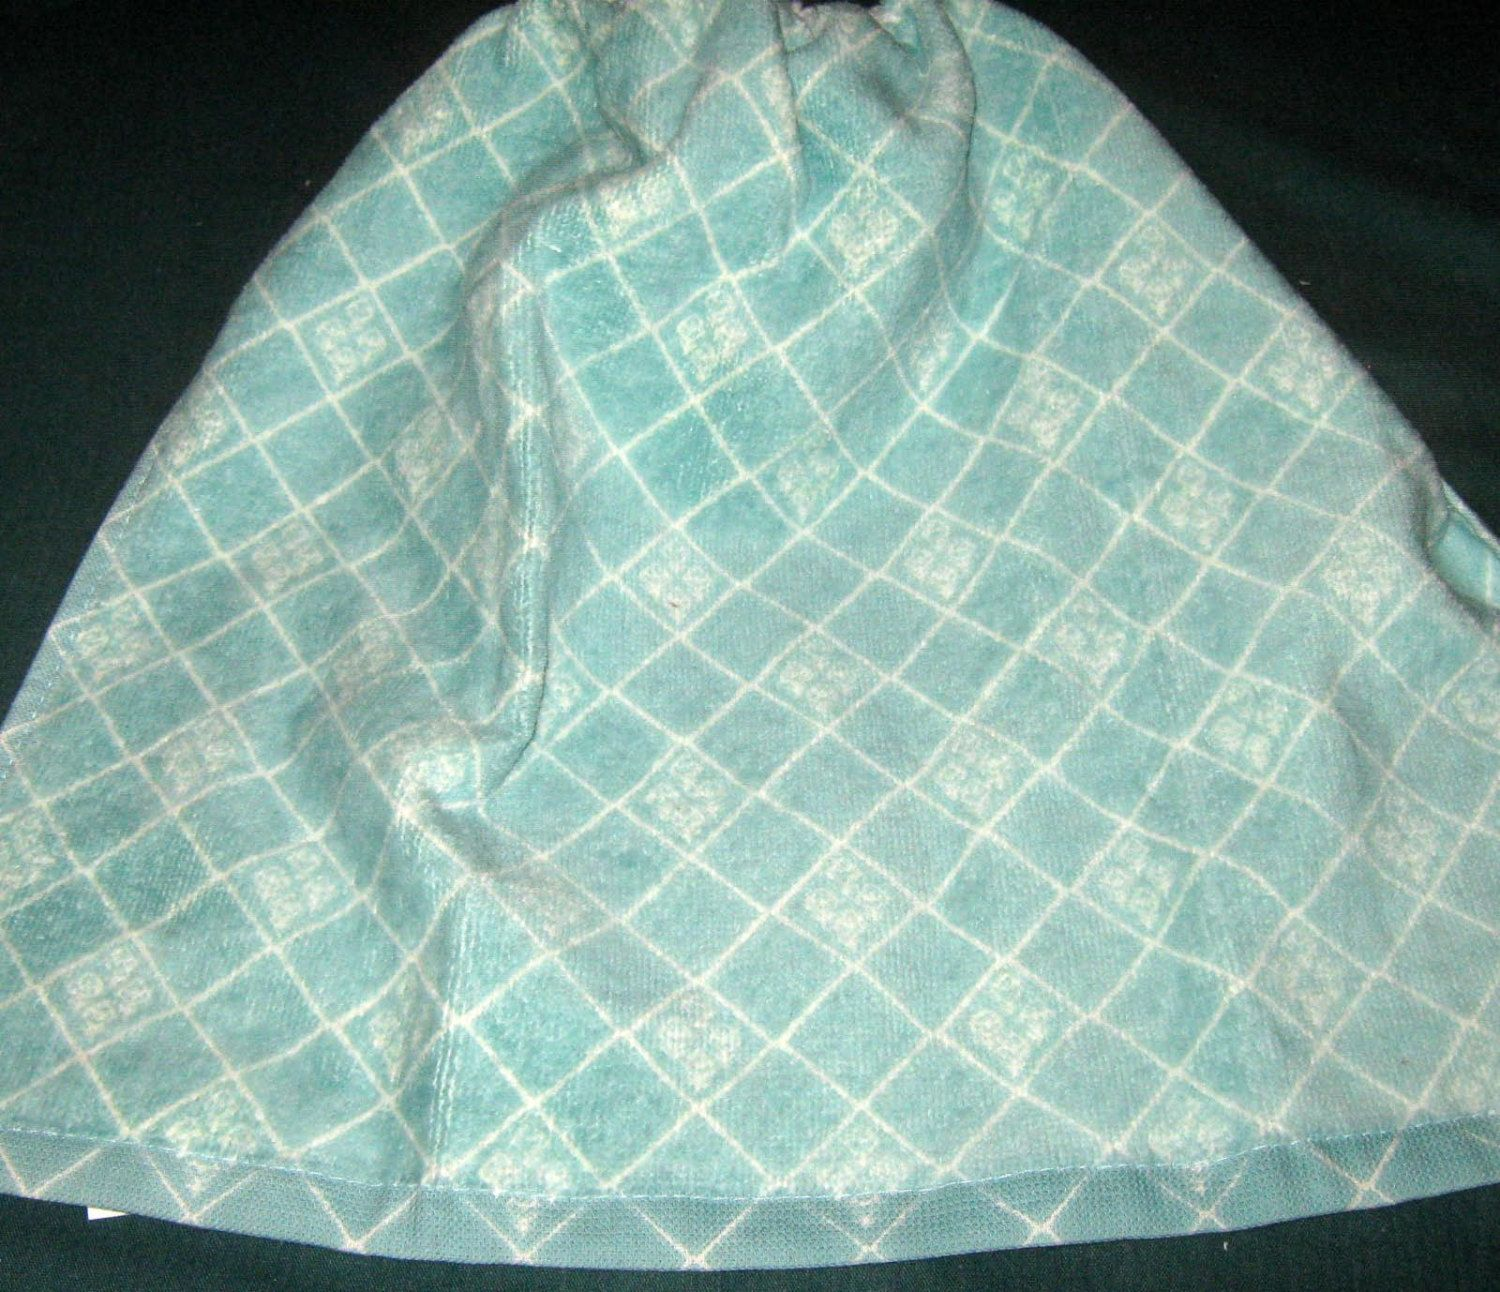 Crochet Kitchen Hanging Towel, Aqua with white lines, white crochet top